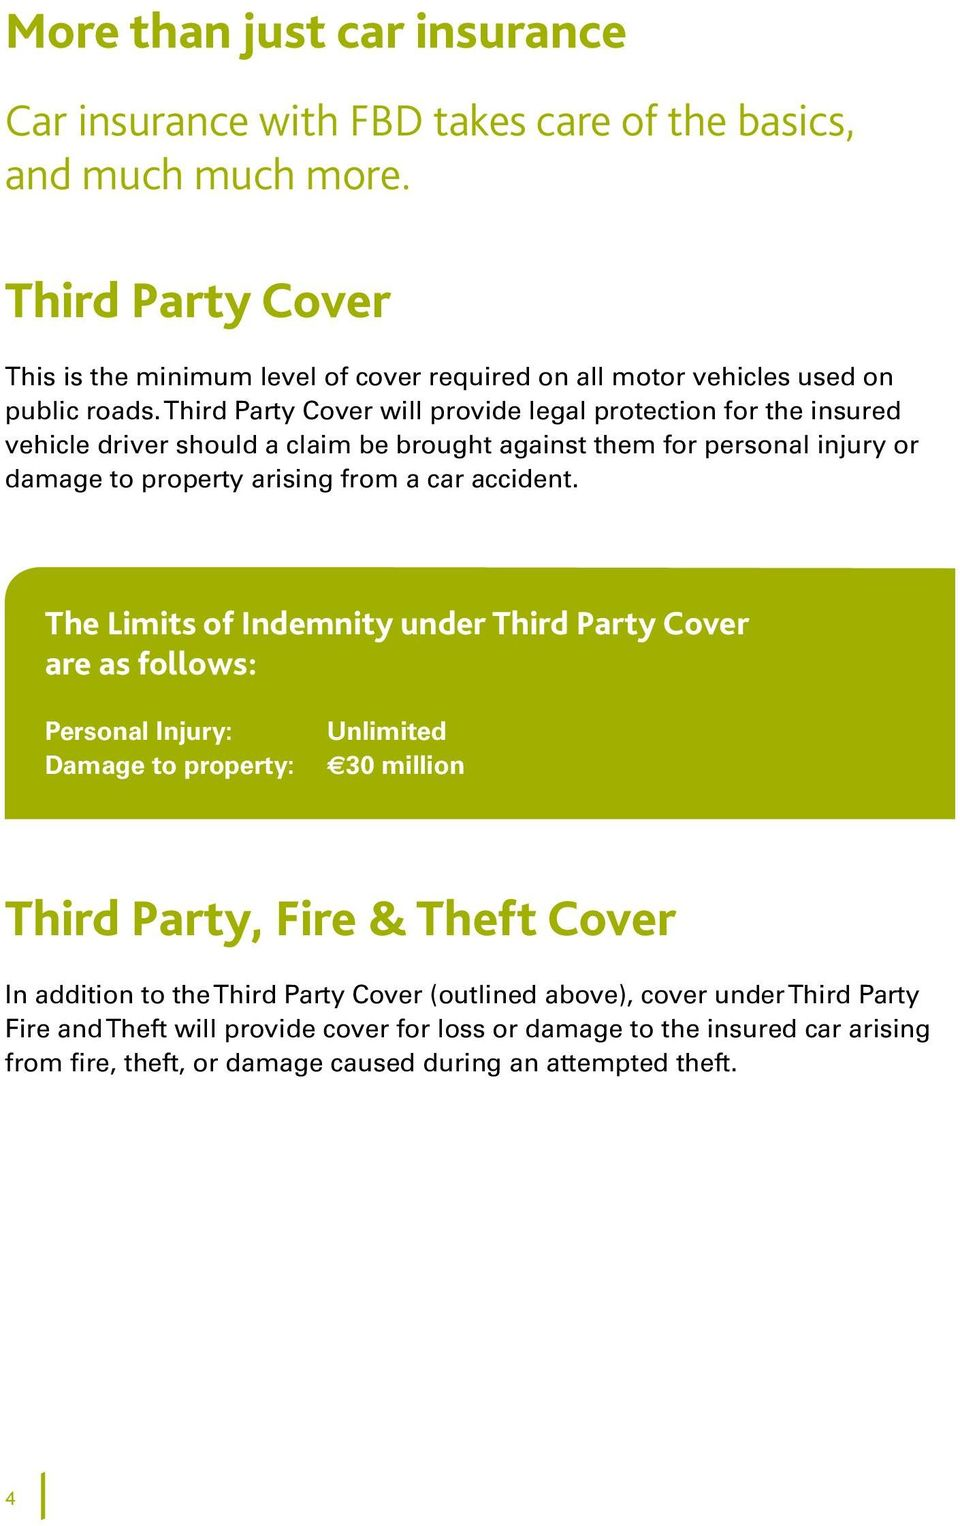 Third Party Cover will provide legal protection for the insured vehicle driver should a claim be brought against them for personal injury or damage to property arising from a car accident.